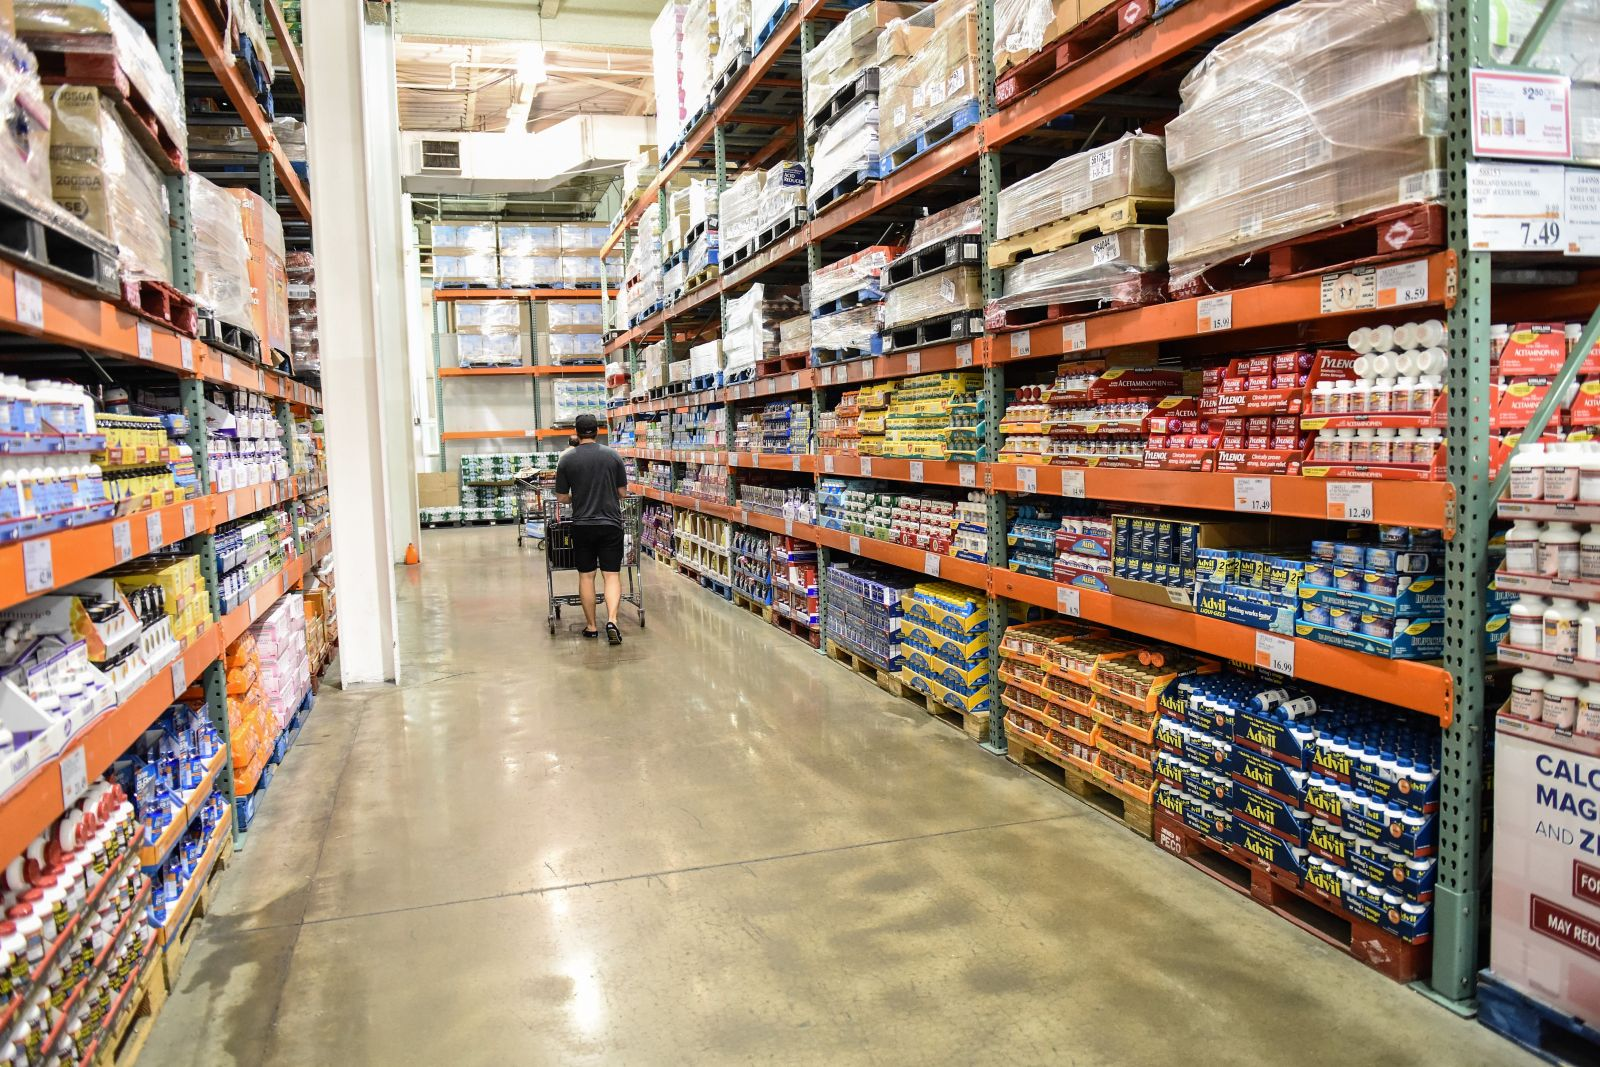 Costco, a membership only warehouse retailer, plans to open its first Midlands location on Aug. 10. (Photo/Shutterstock)